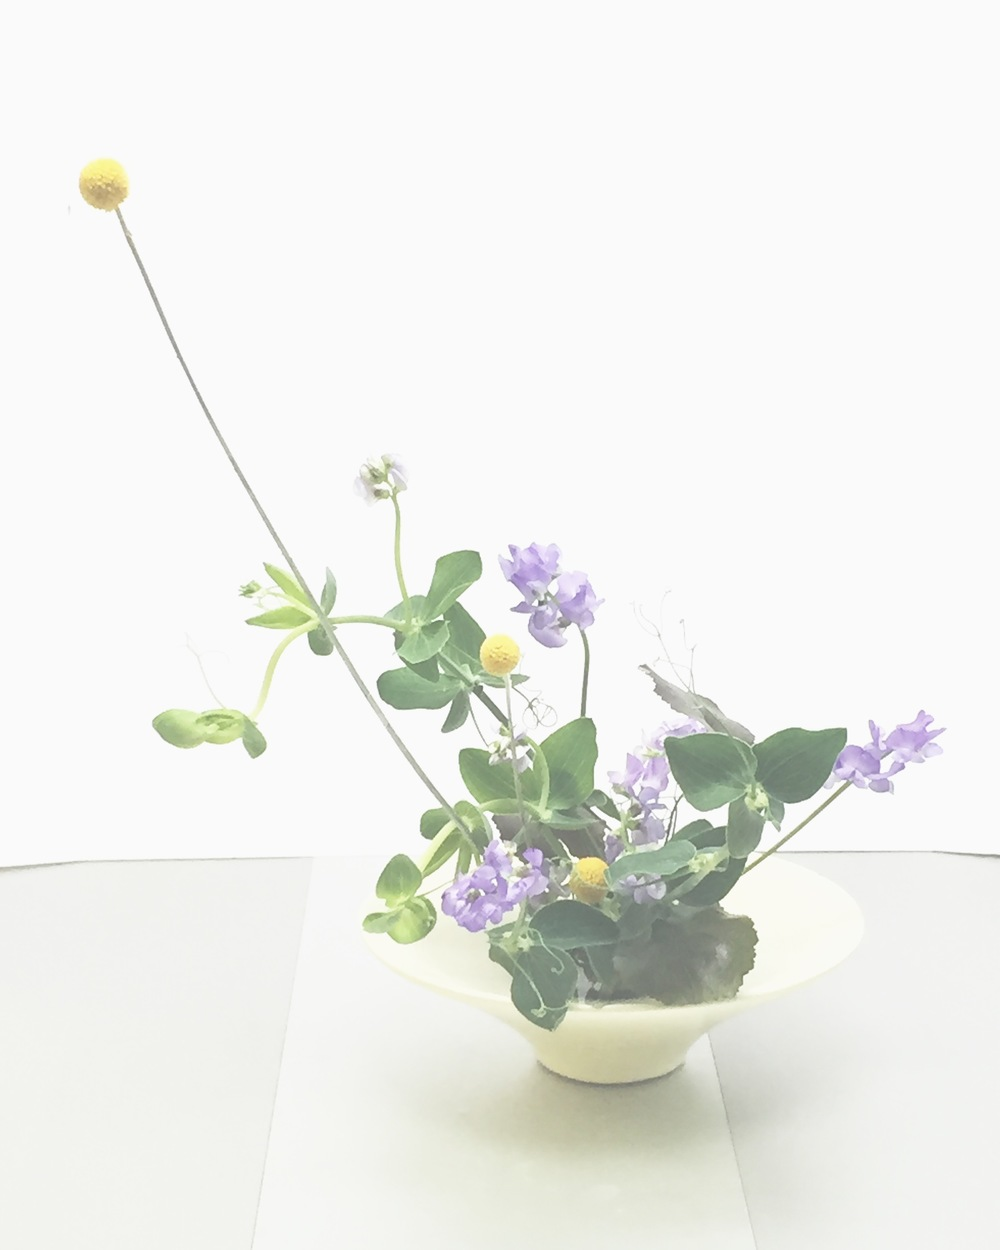 My arrangement today sweet pea, craspedia, galax leaf.  #nodaikebanaclass   #ikenobo   #ikebana   #flowers   #sweetpea